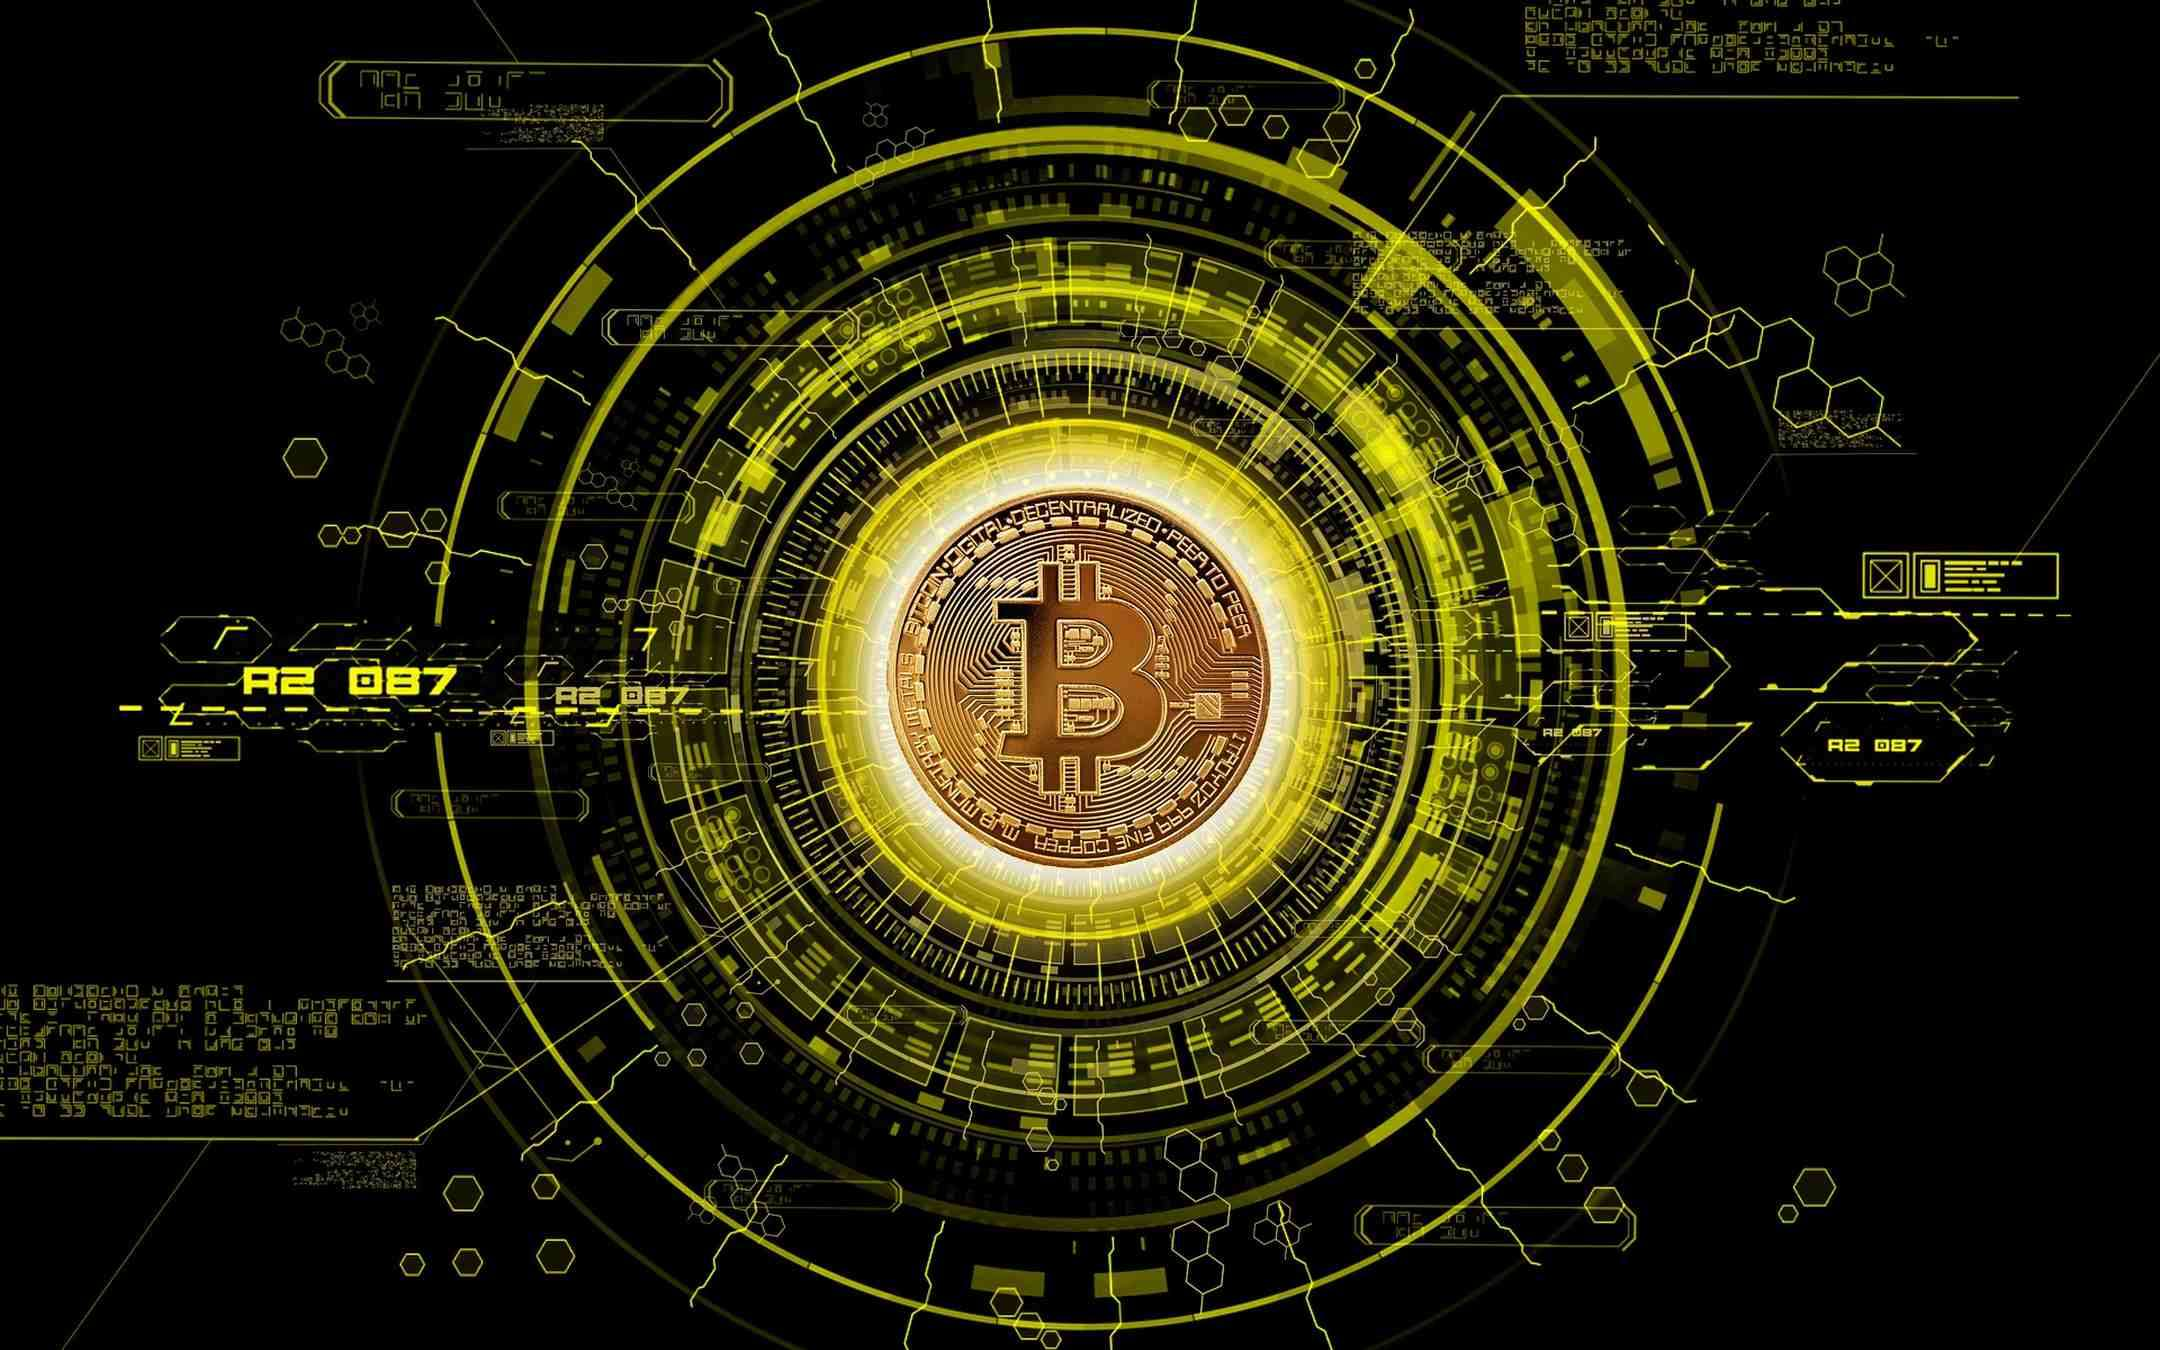 Botnet protected by a Bitcoin blockchain